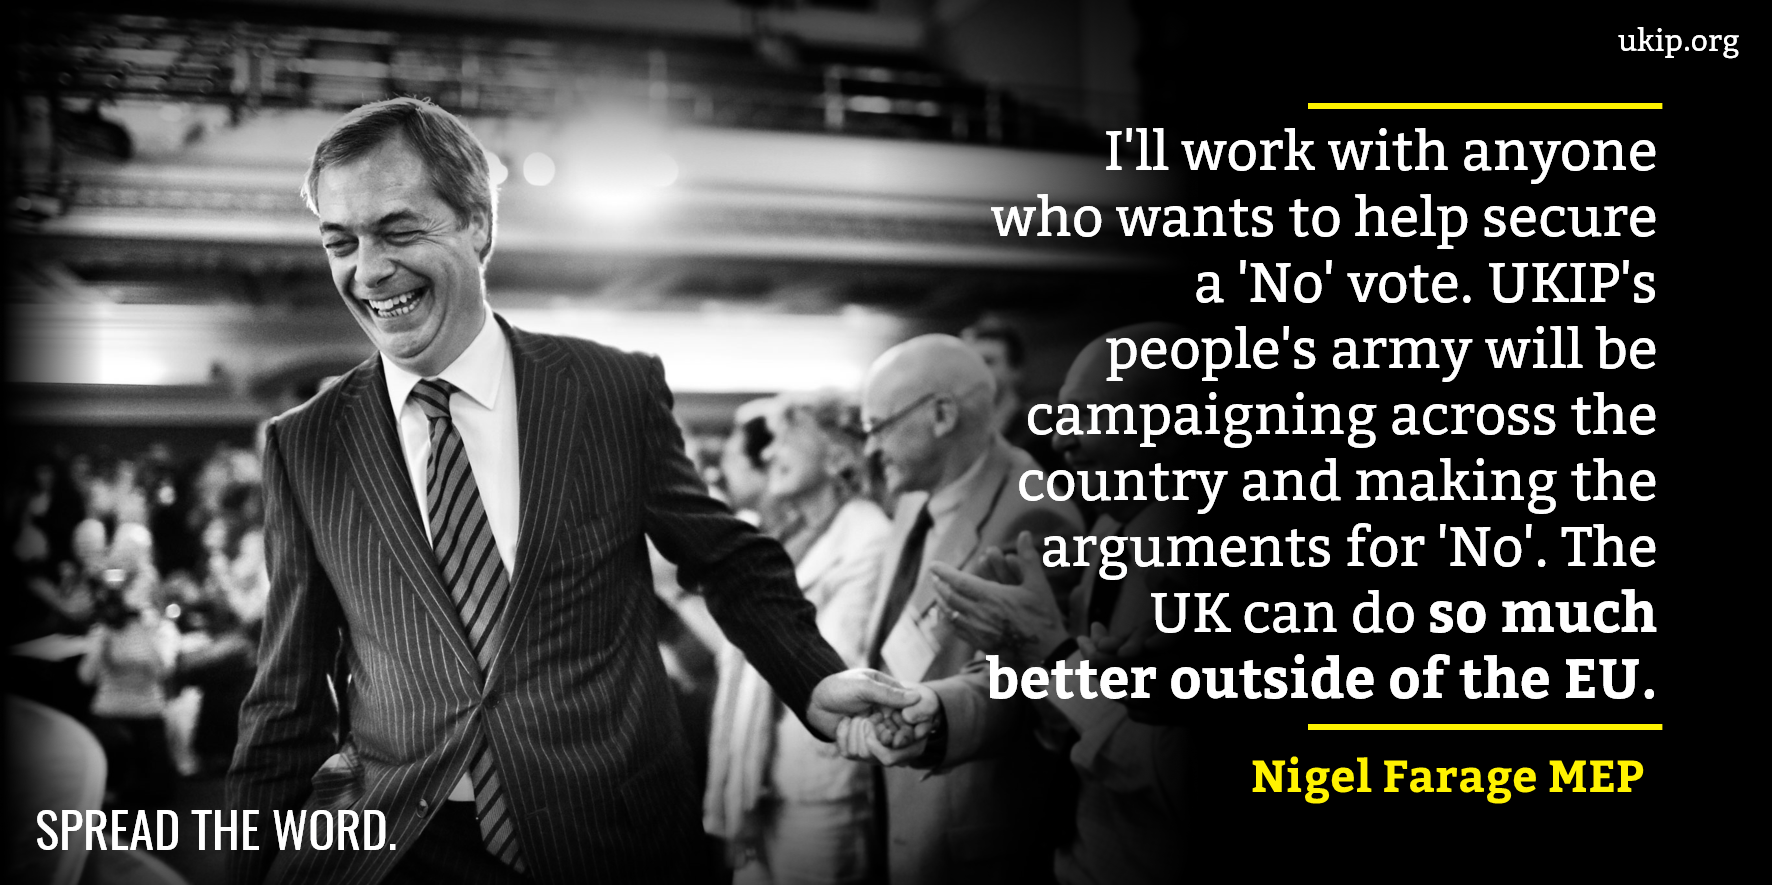 farage-quote-novote_(1).png